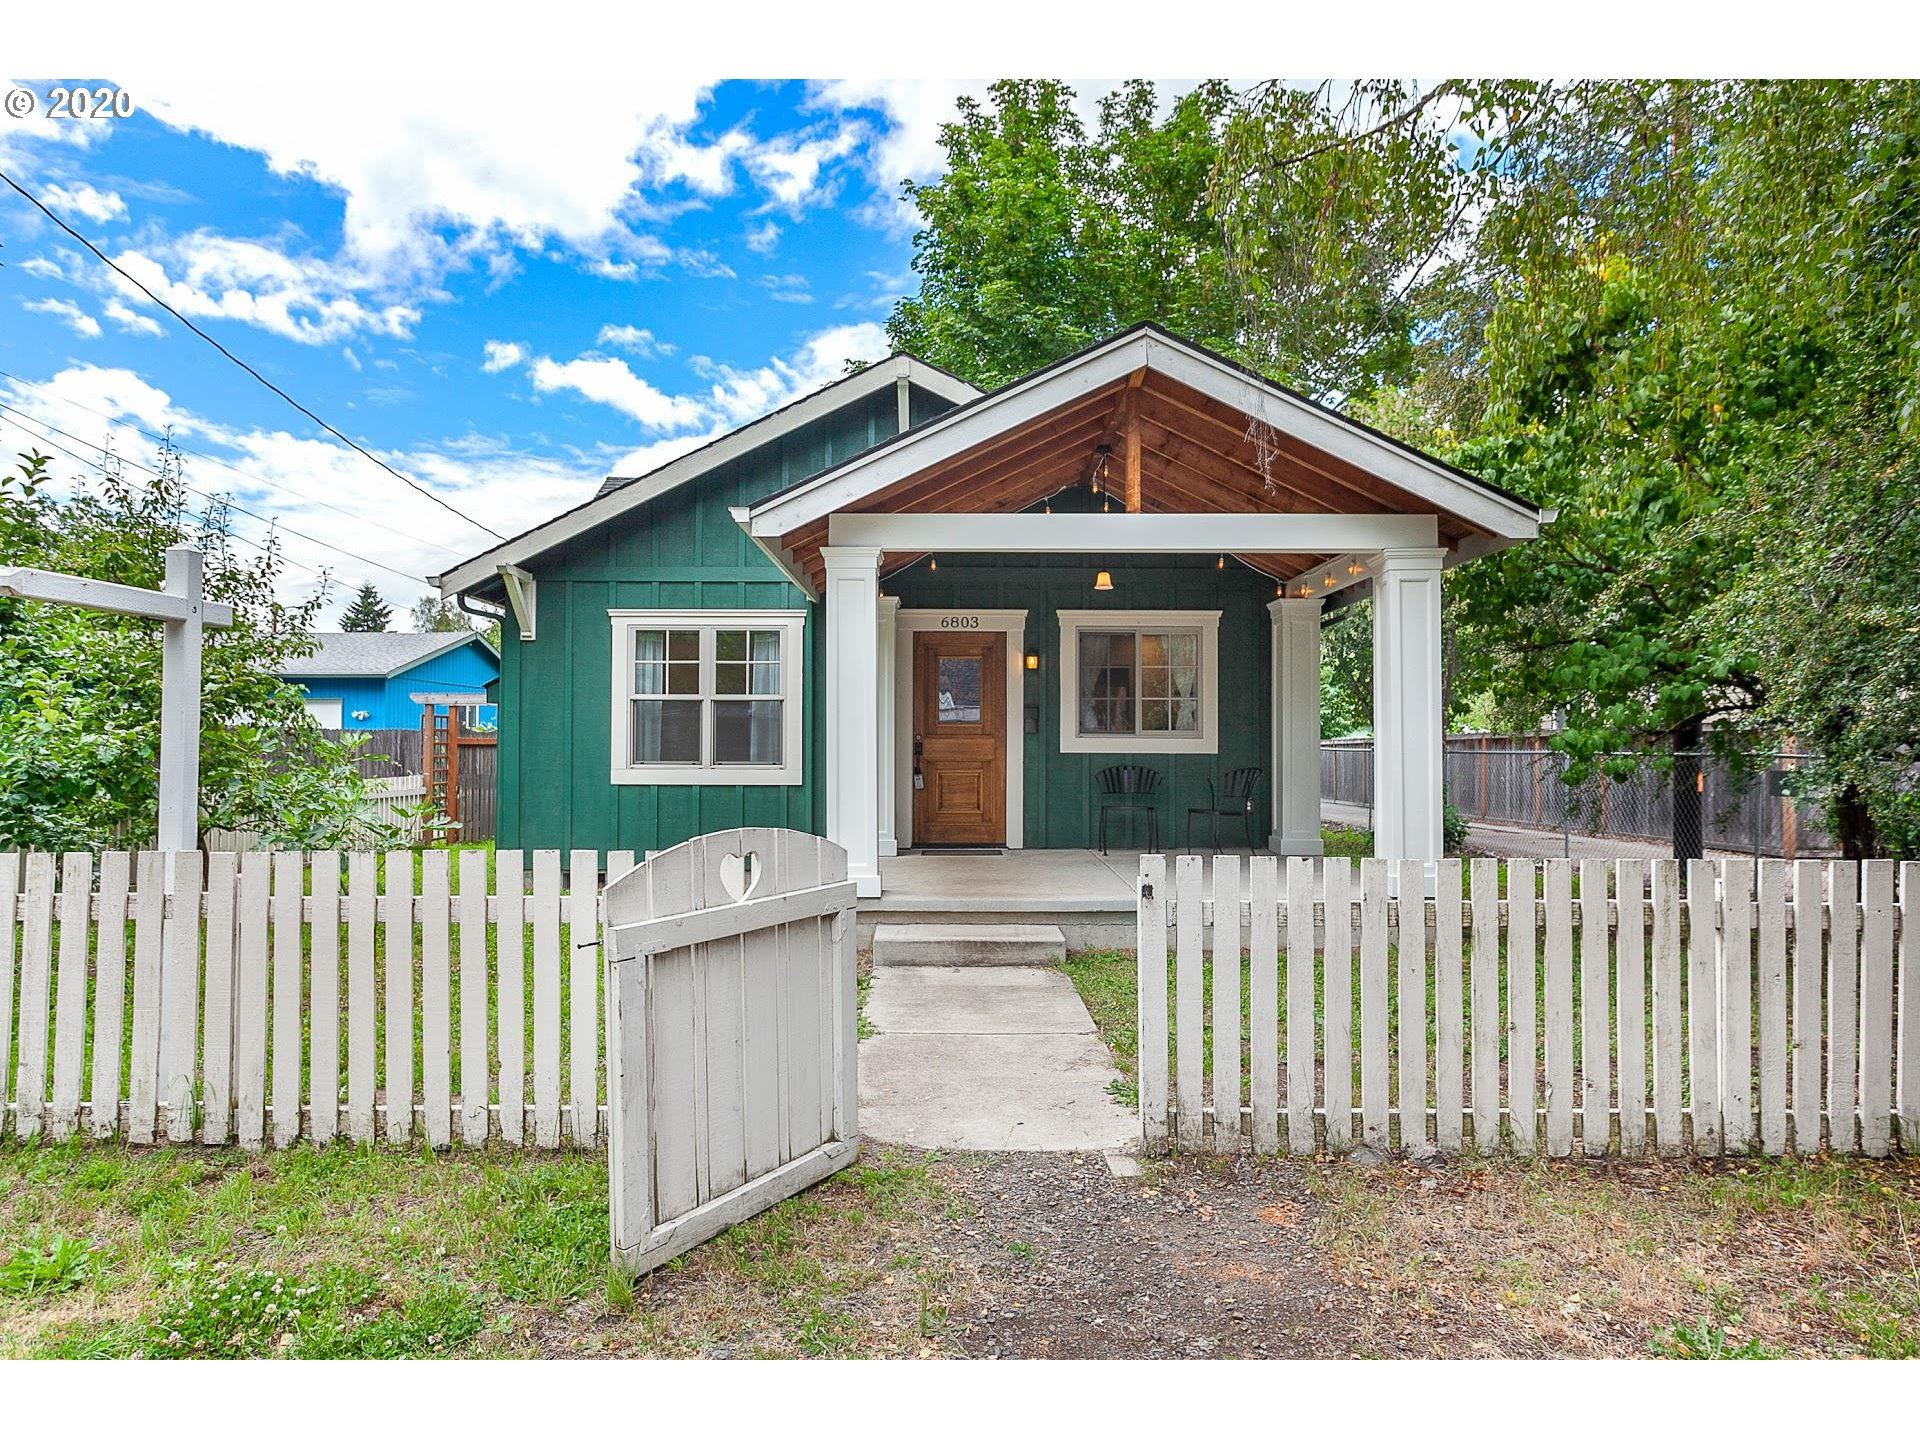 6803 SE 50TH AVE, Portland, OR 97206 - MLS#: 20620466